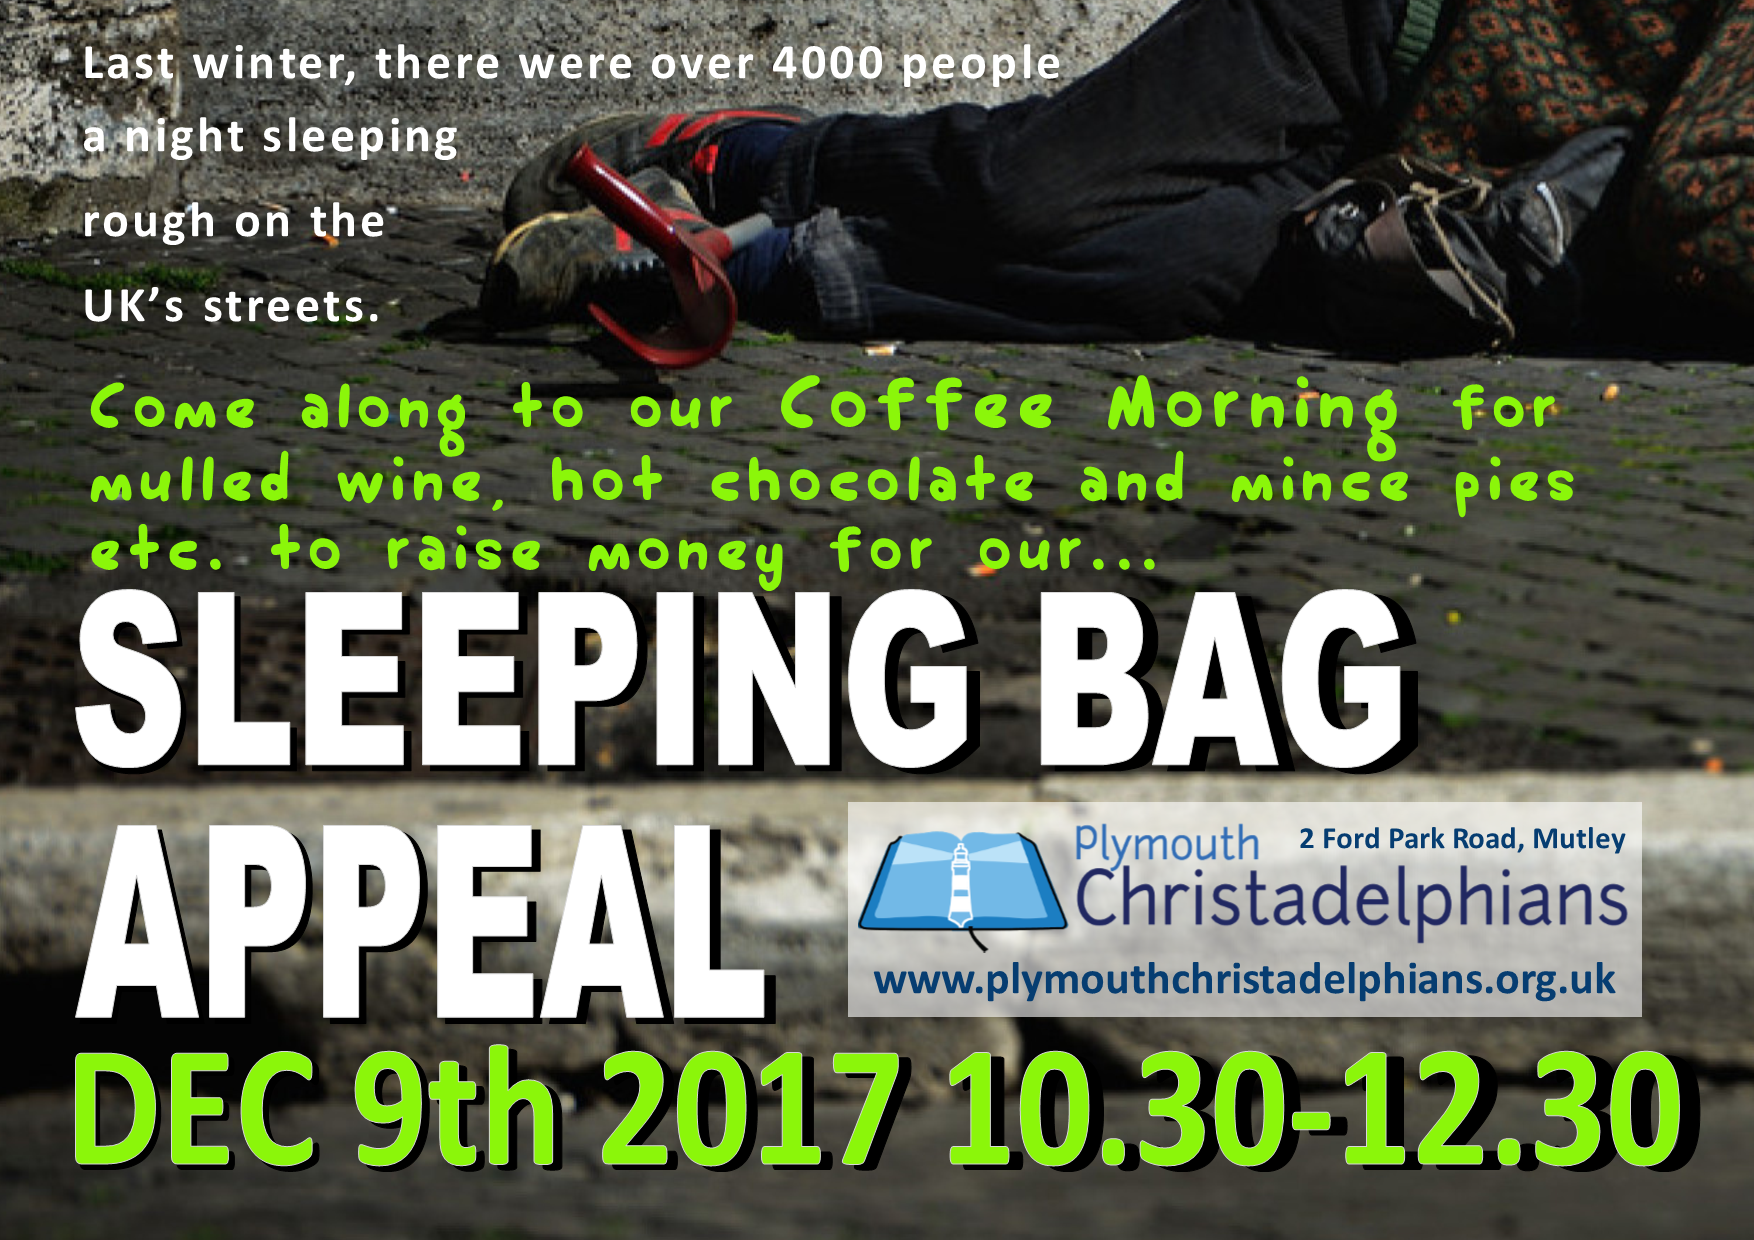 Coffee morning flyer 09-12-17 COG!!!!!!!!!!!!!!!!!!!!!!!!!!!!!!!.png